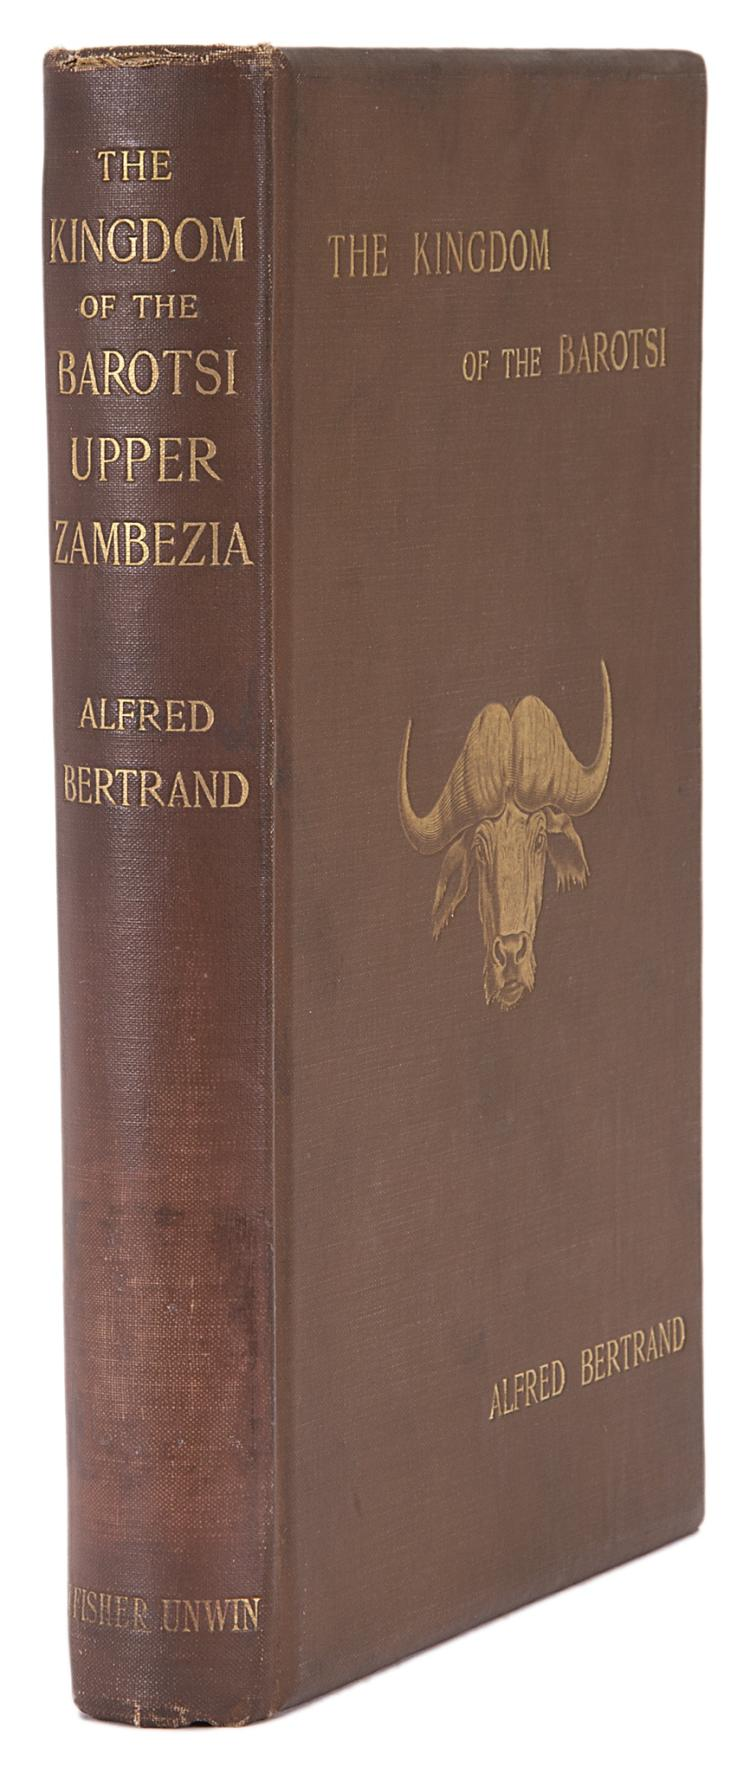 Africa.- Bertrand (Alfred) The Kingdom of the Barotsi Upper Zambezia, 1st Eng. ed., orig. cloth, 1899.